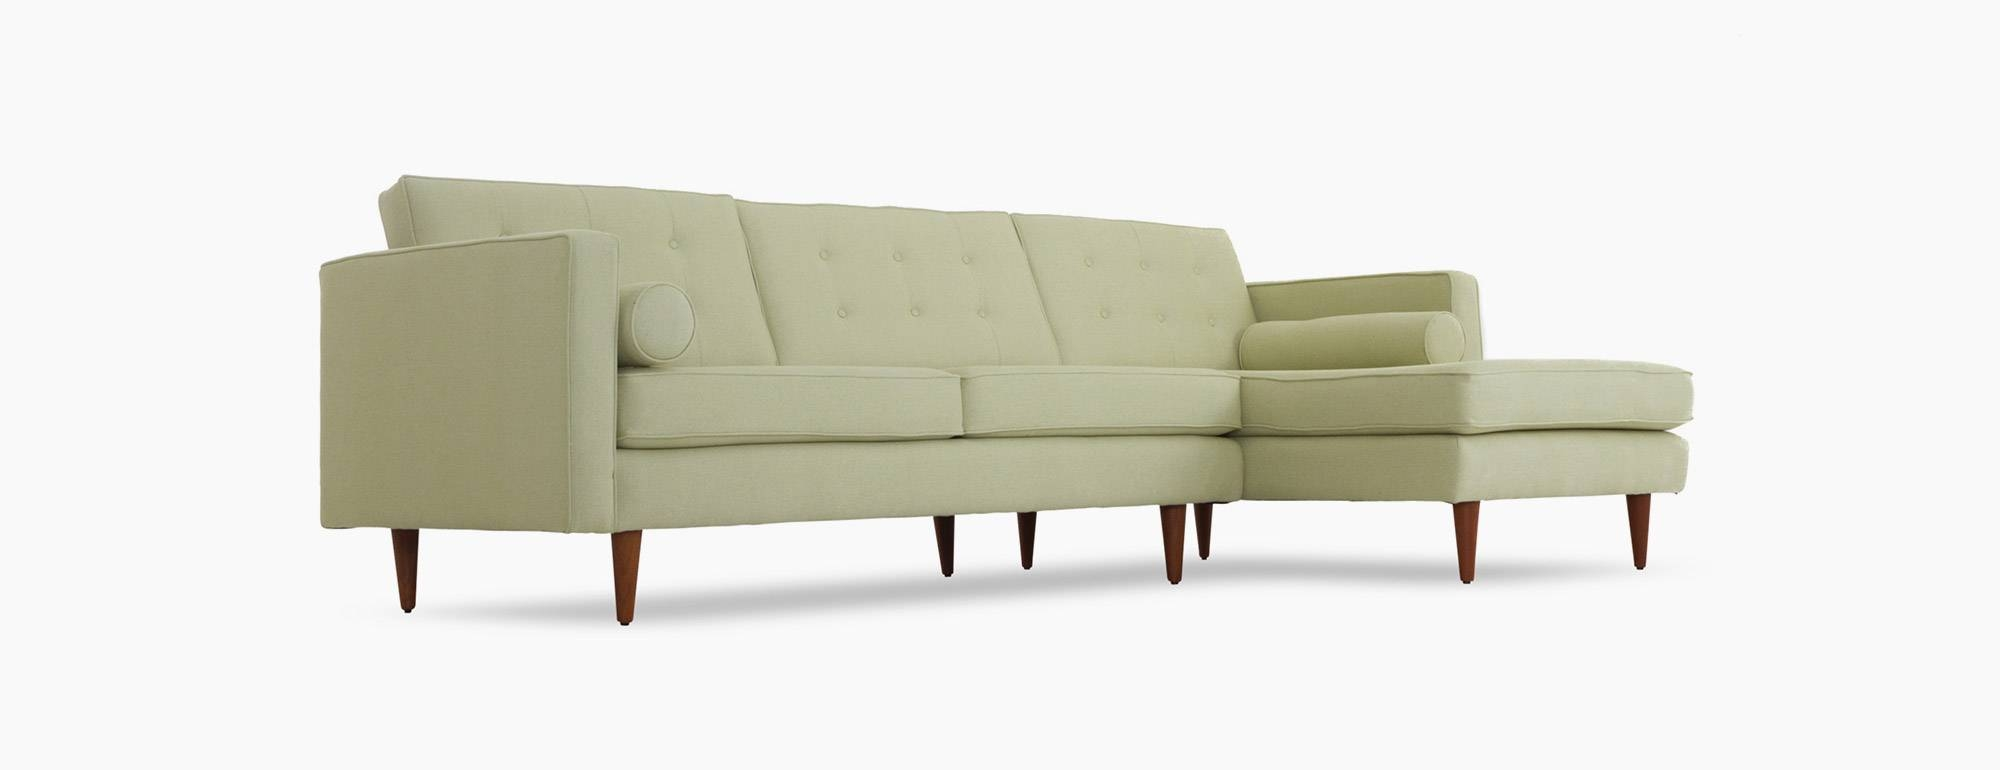 Braxton Sectional | Joybird for Braxton Sectional Sofa (Image 14 of 30)